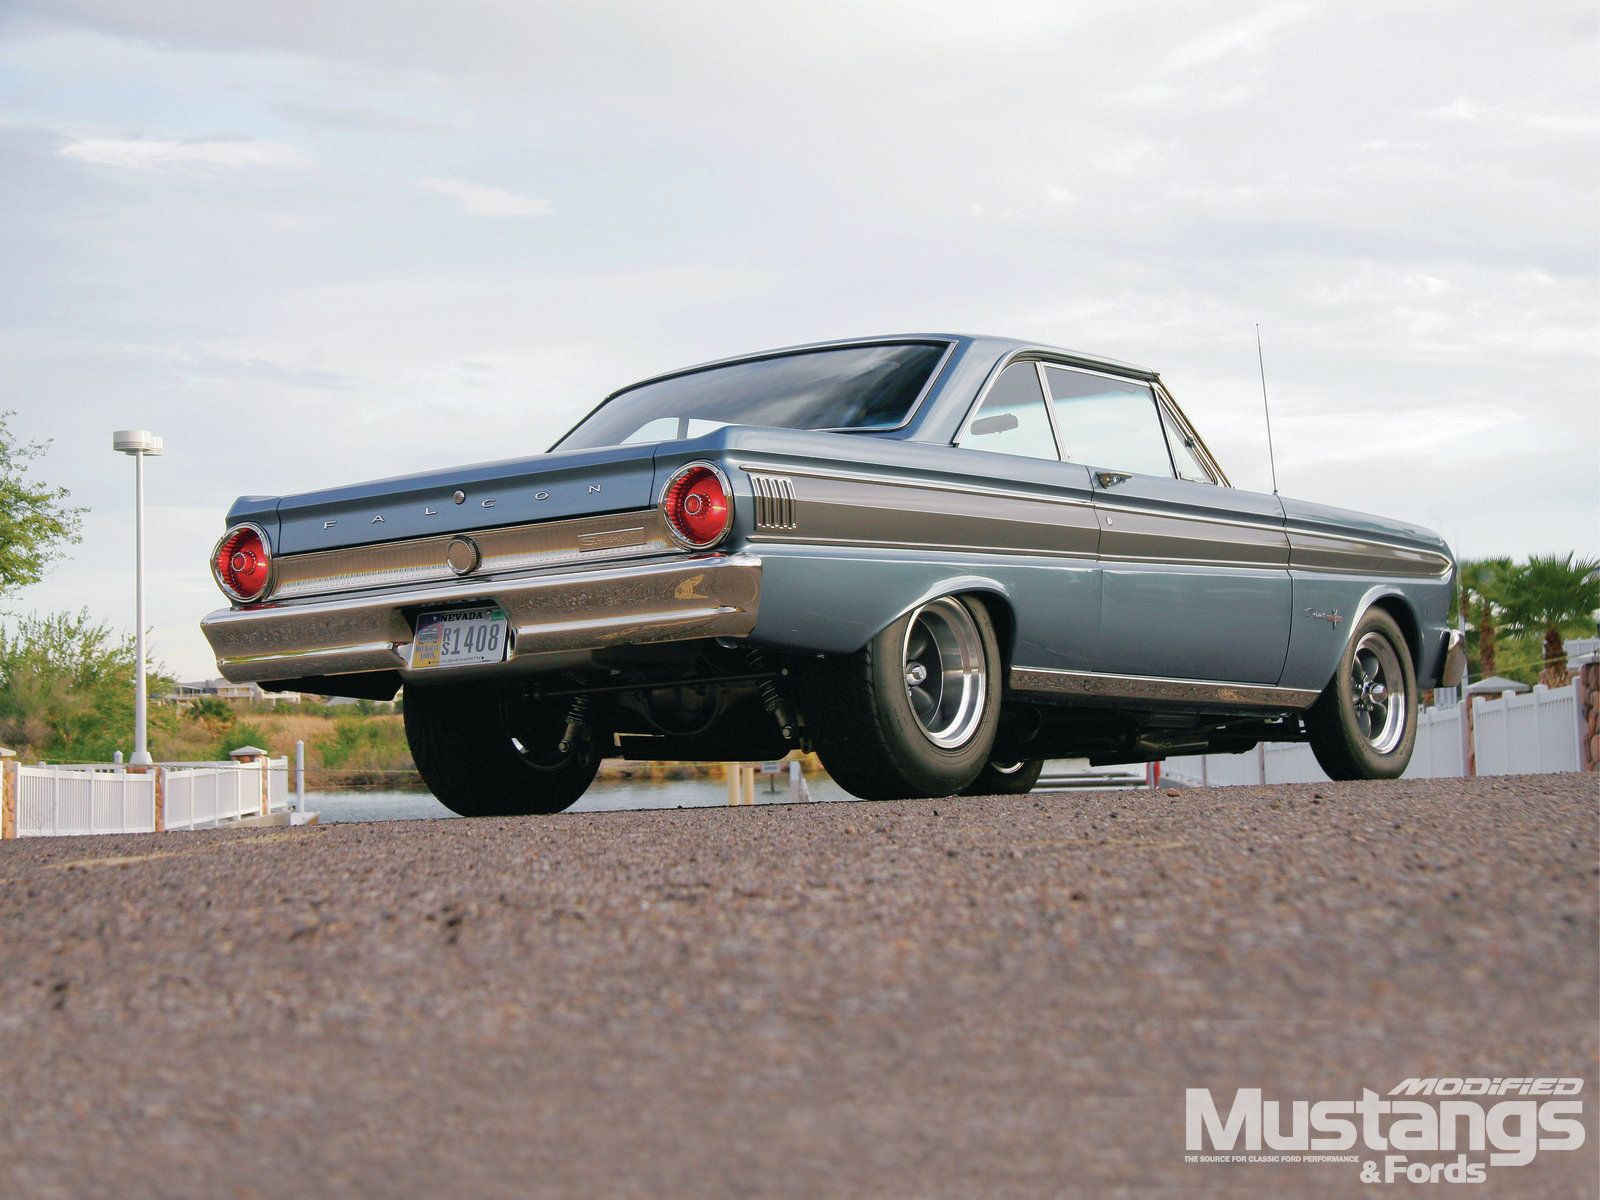 1964 ford falcon ricks motor stuff pinterest ford falcon 1964 ford falcon ricks motor stuff pinterest ford falcon falcons and ford sciox Images